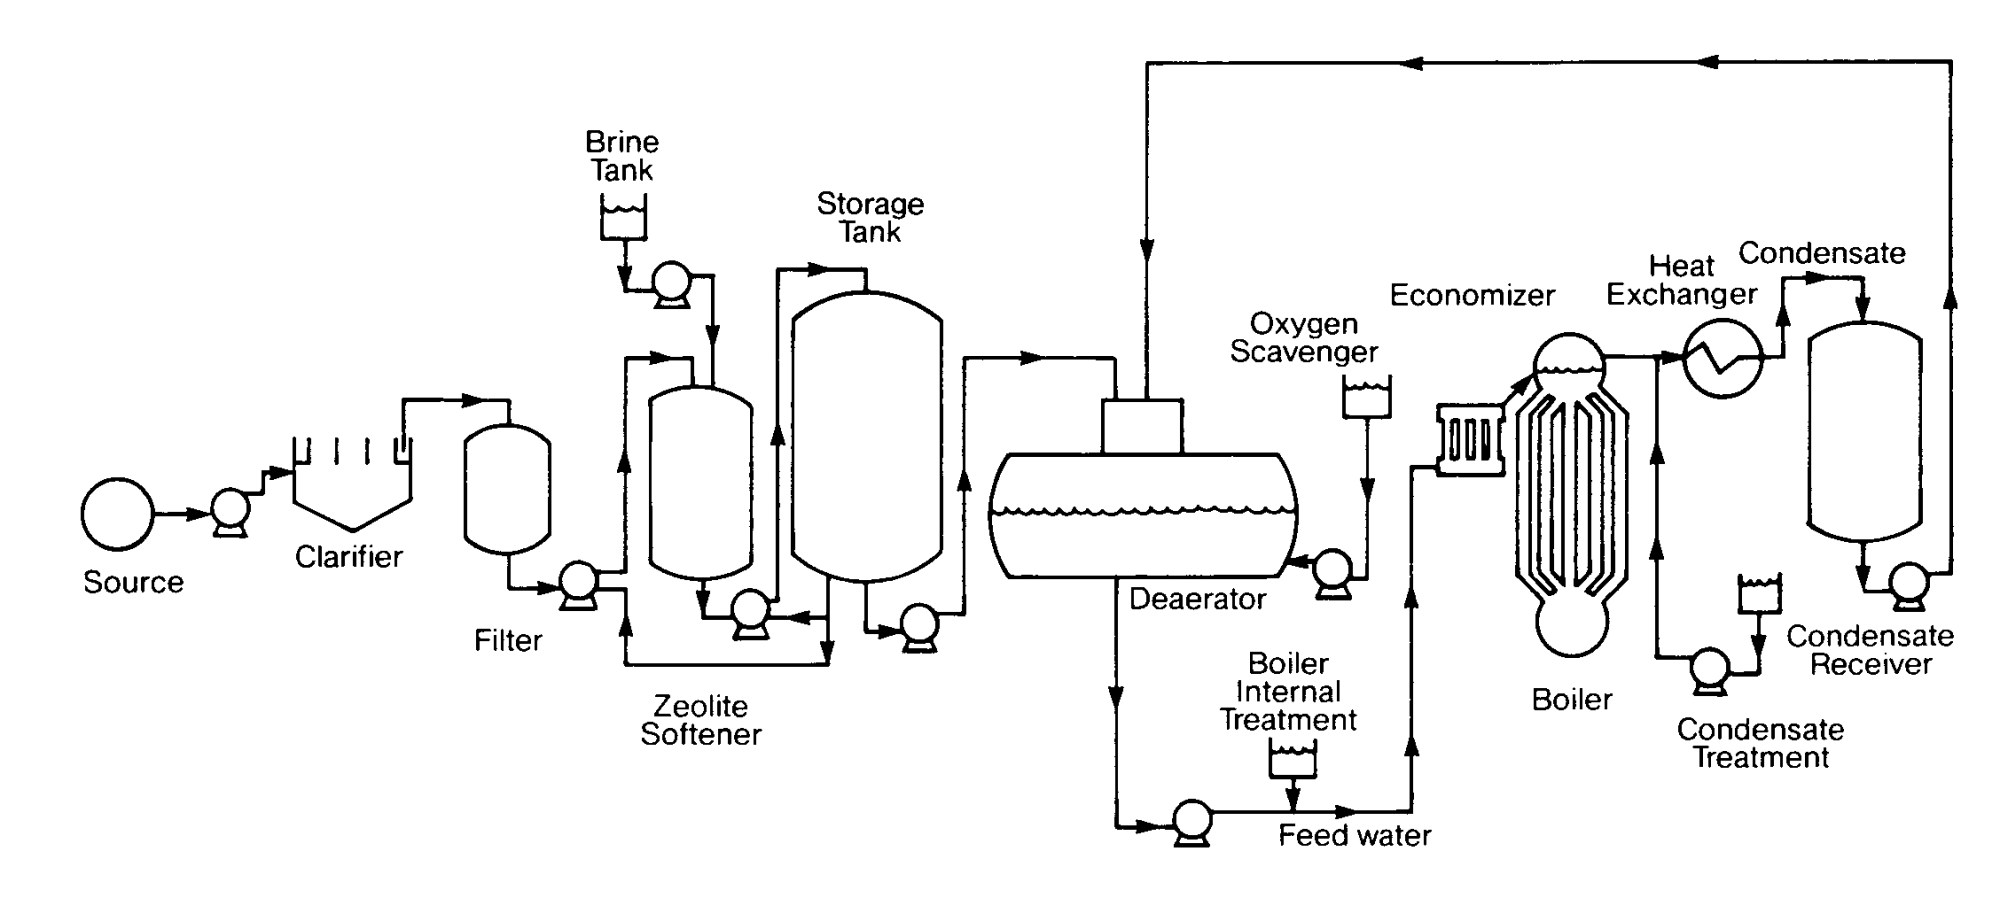 hight resolution of boiler plant flow diagram